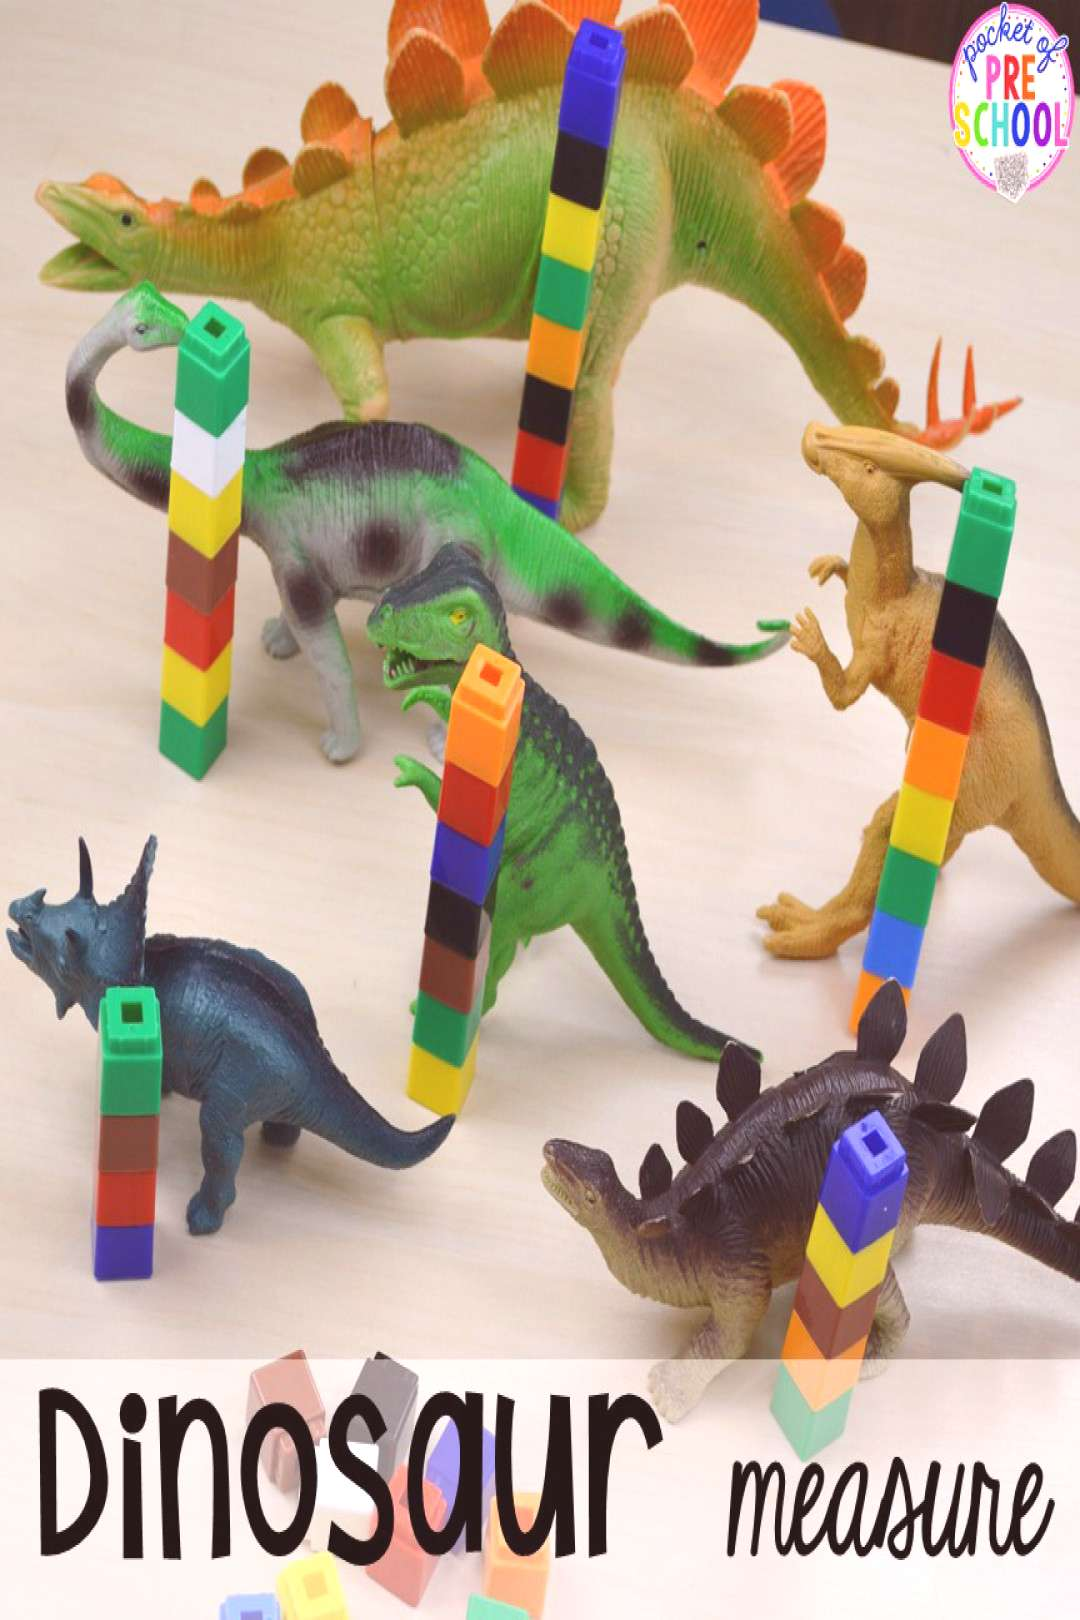 Dinosaur Themed Activities amp Centers for Little Learners - Pocket of Preschool